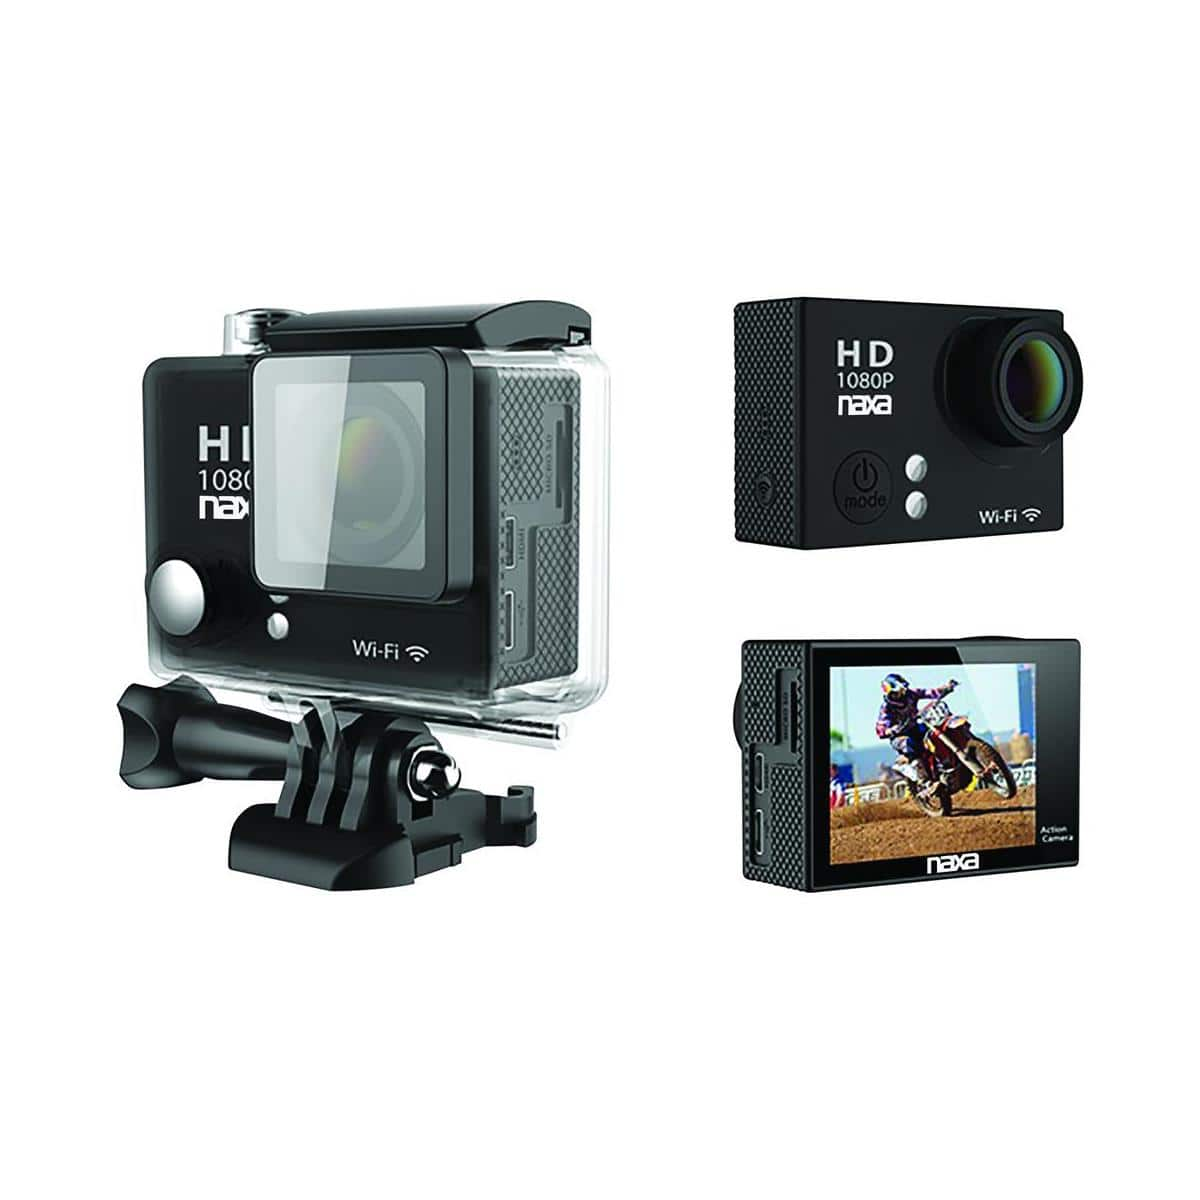 Naxa NDC-404 12MP WiFi Waterproof 1080p Action Camera $20 + free shipping